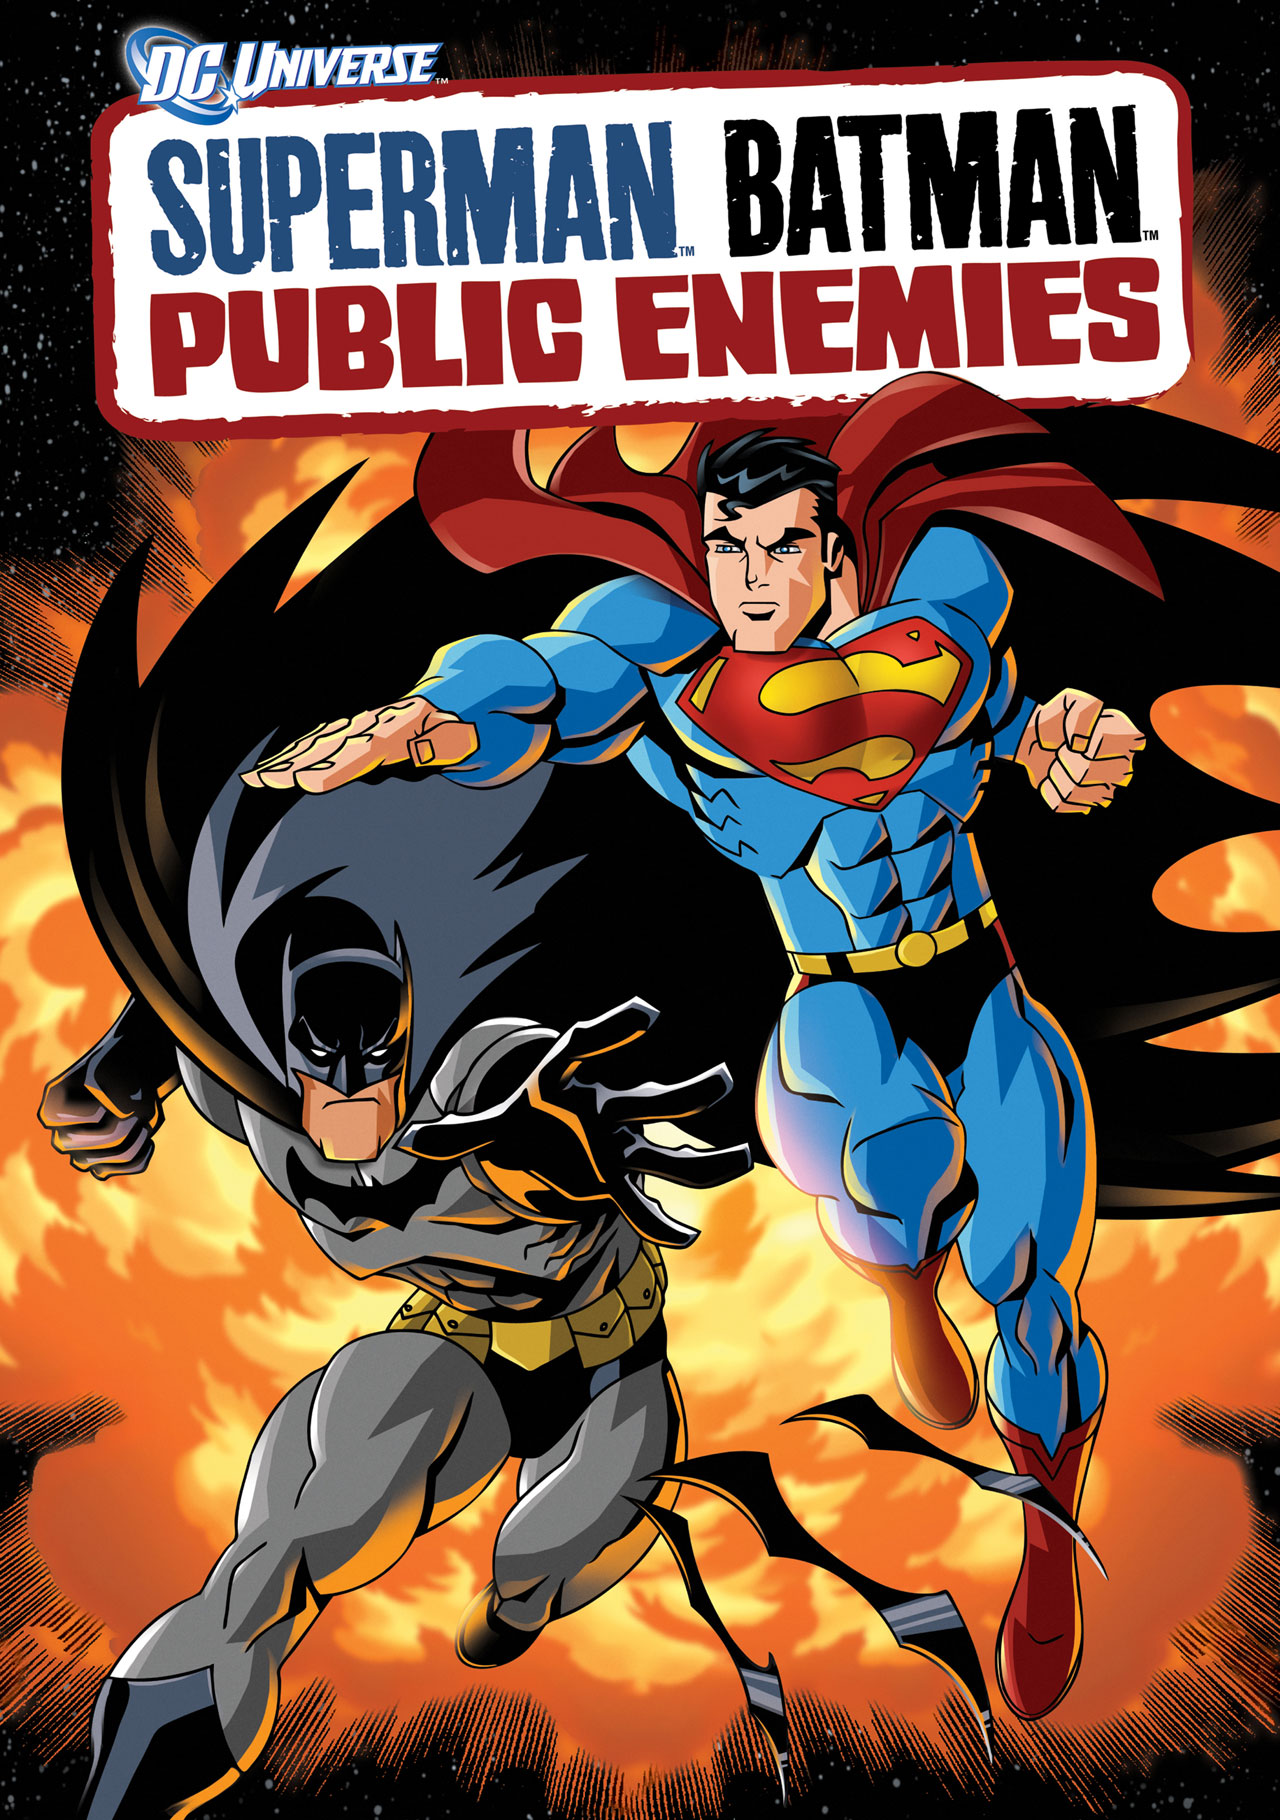 Filmes de DC Animated Universe (Original Movies) Superman_Batman_Public_Enemies_one_sheet_v2